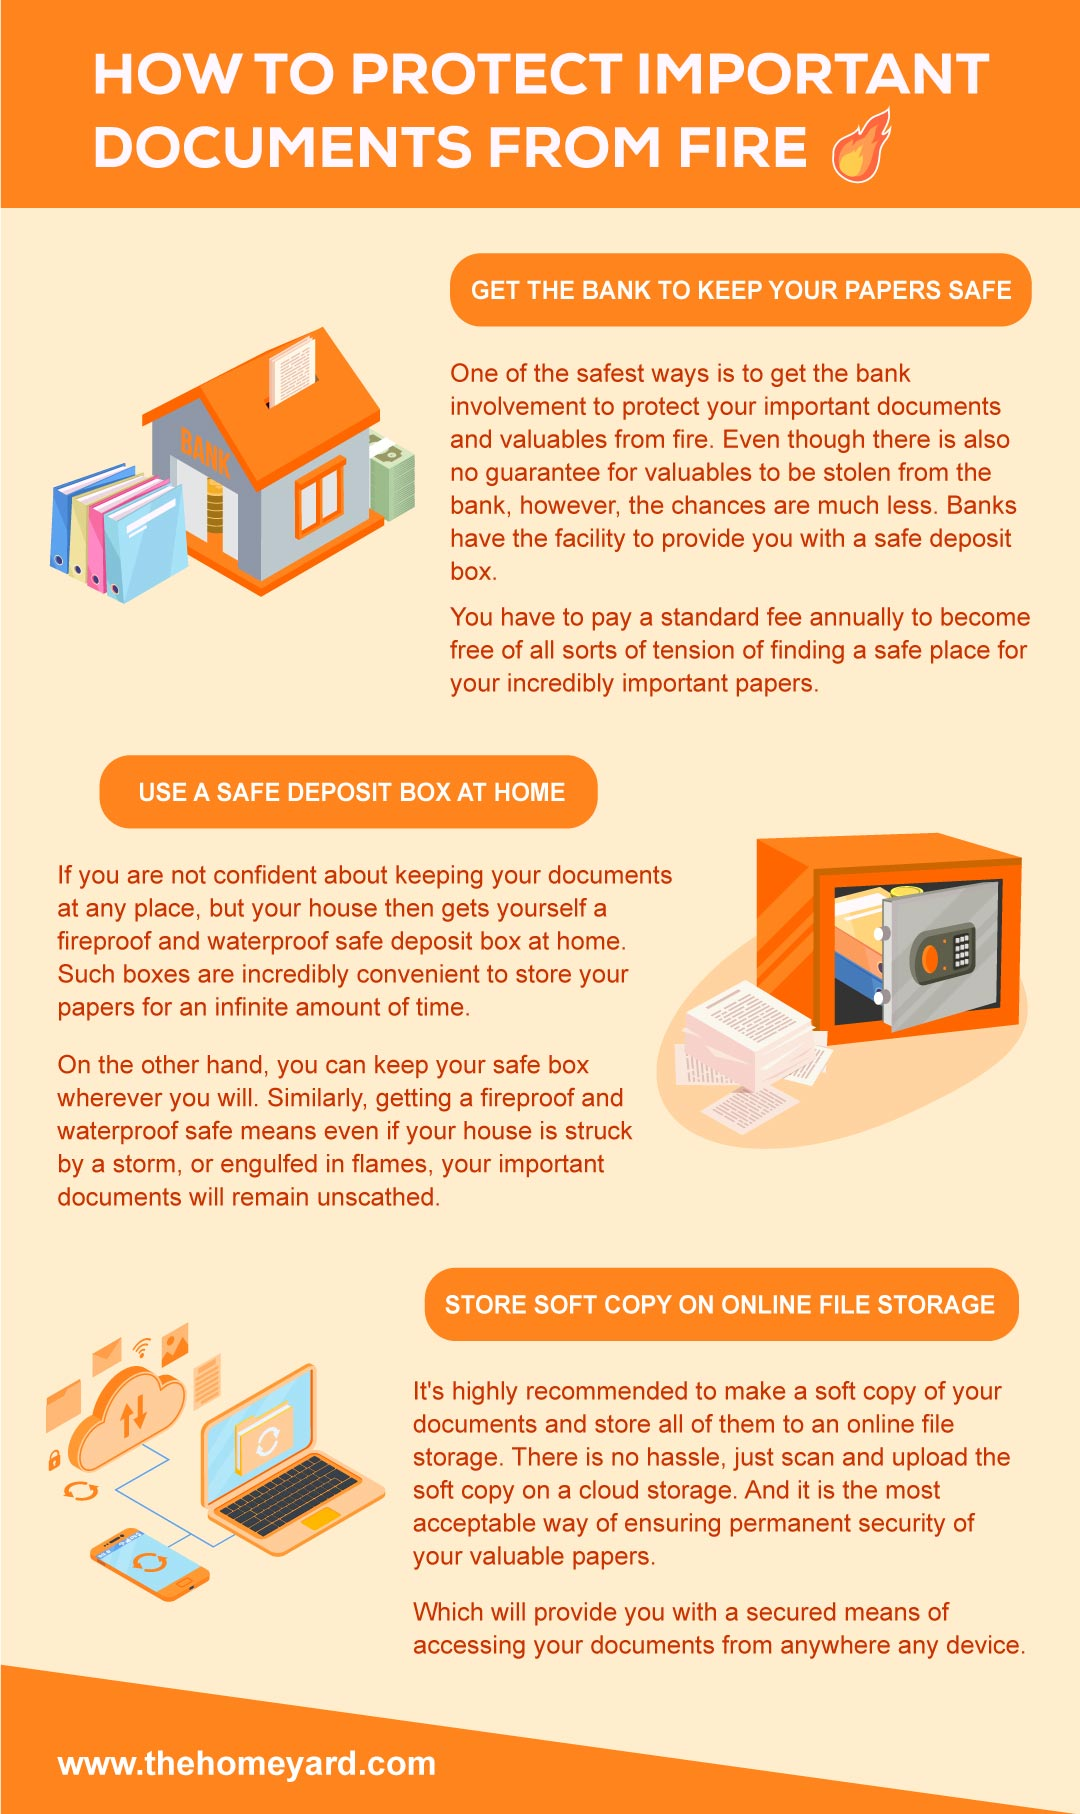 how to protect important documents from fire